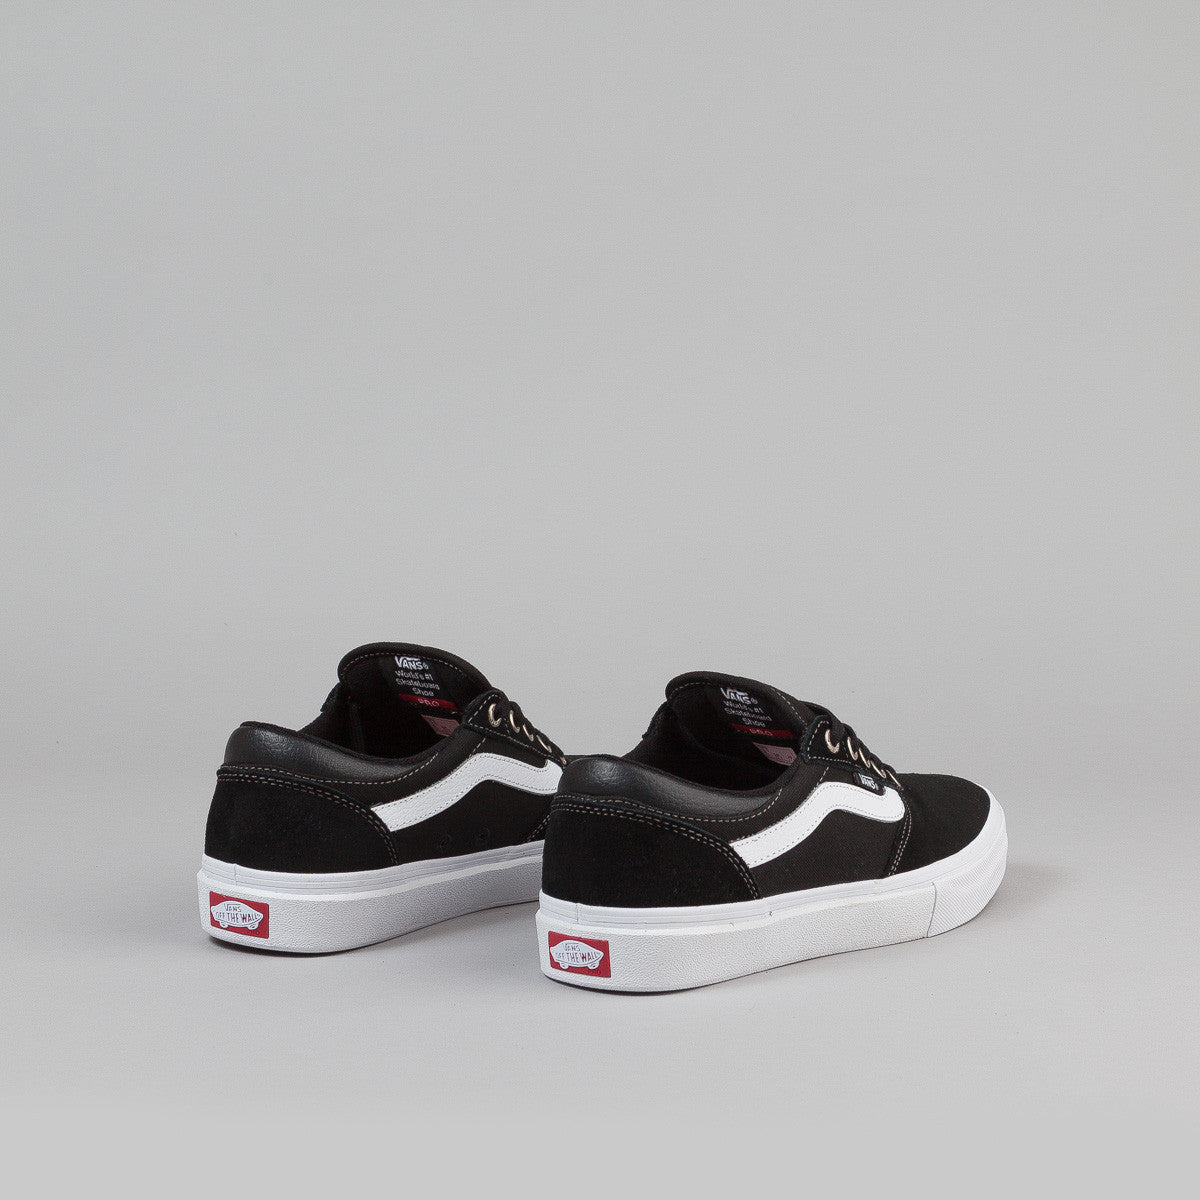 Vans Gilbert Crockett Pro Shoes - Black / White